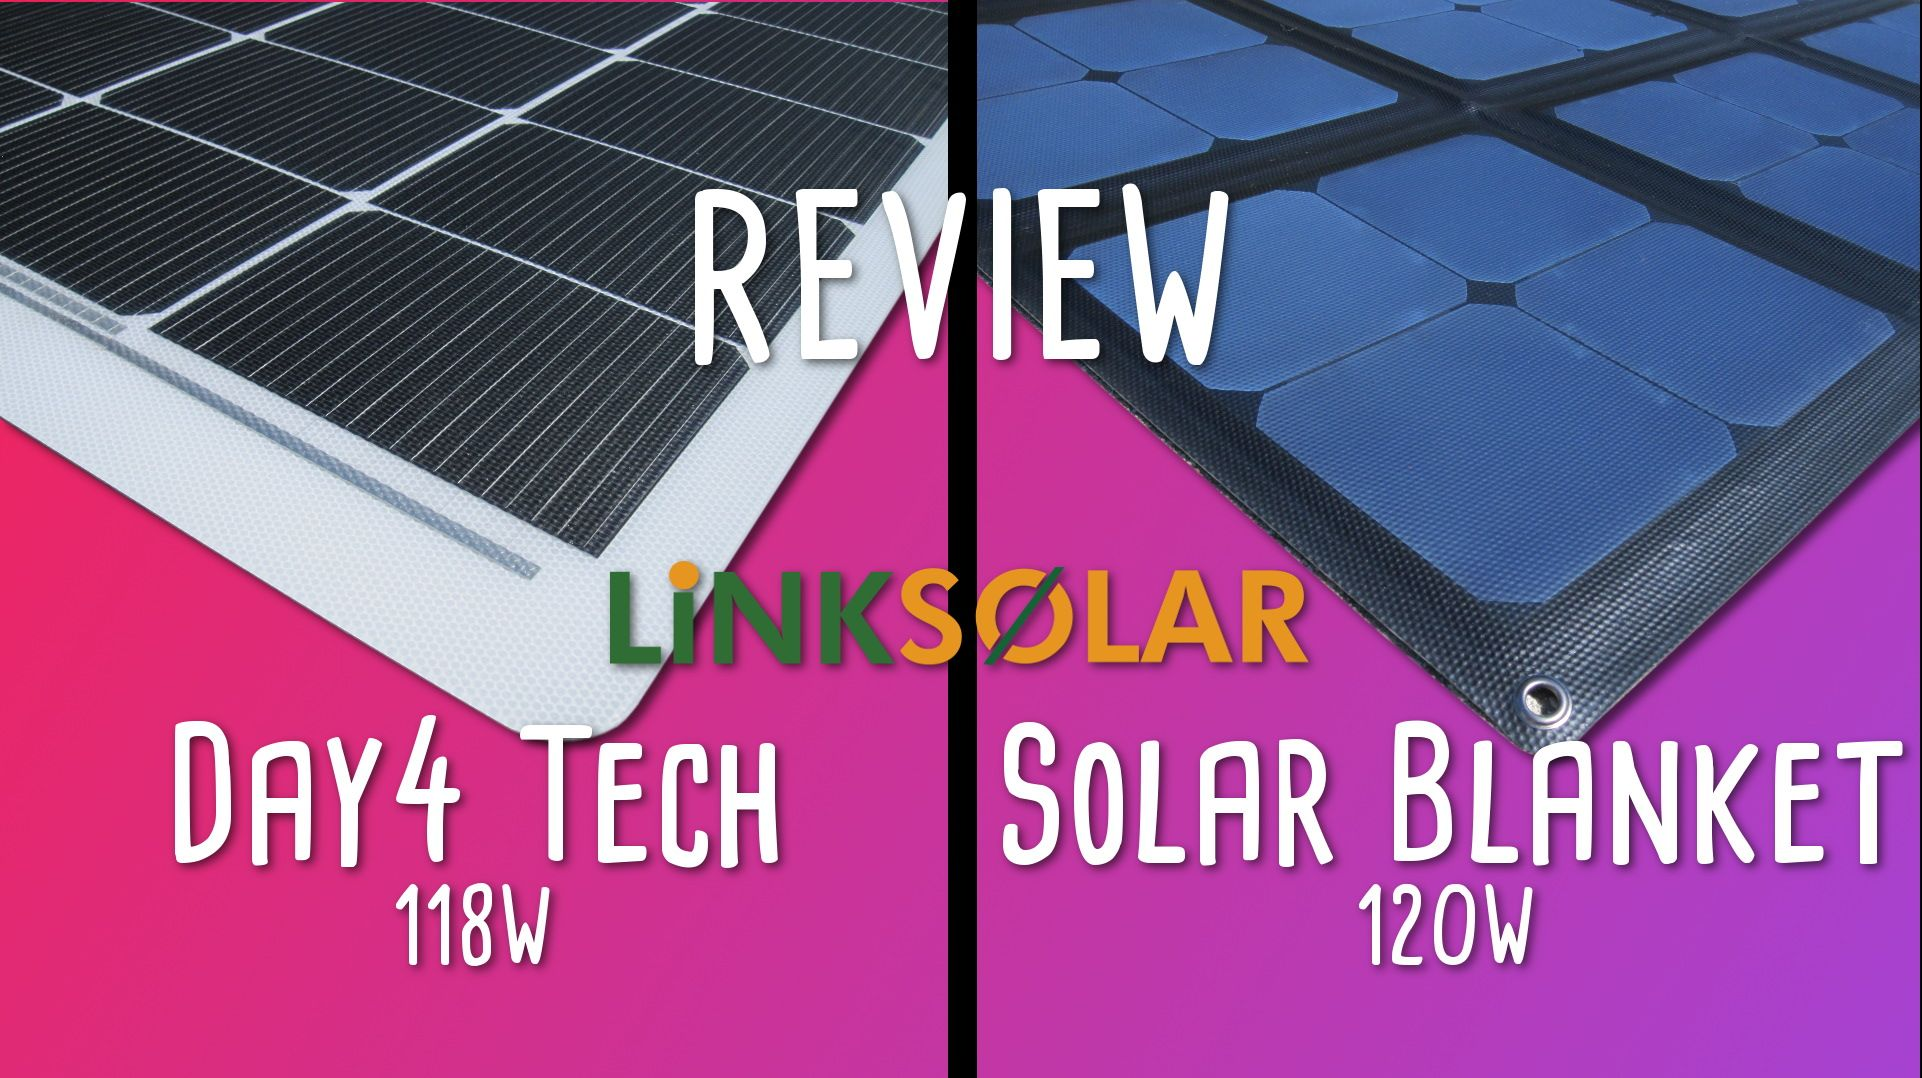 This Is A Short Review Of Two Brand New Flexible Solar Panels The Day4 Tech Panel Looks Very Similar To The Current F Solar Panels Flexible Solar Panels Solar